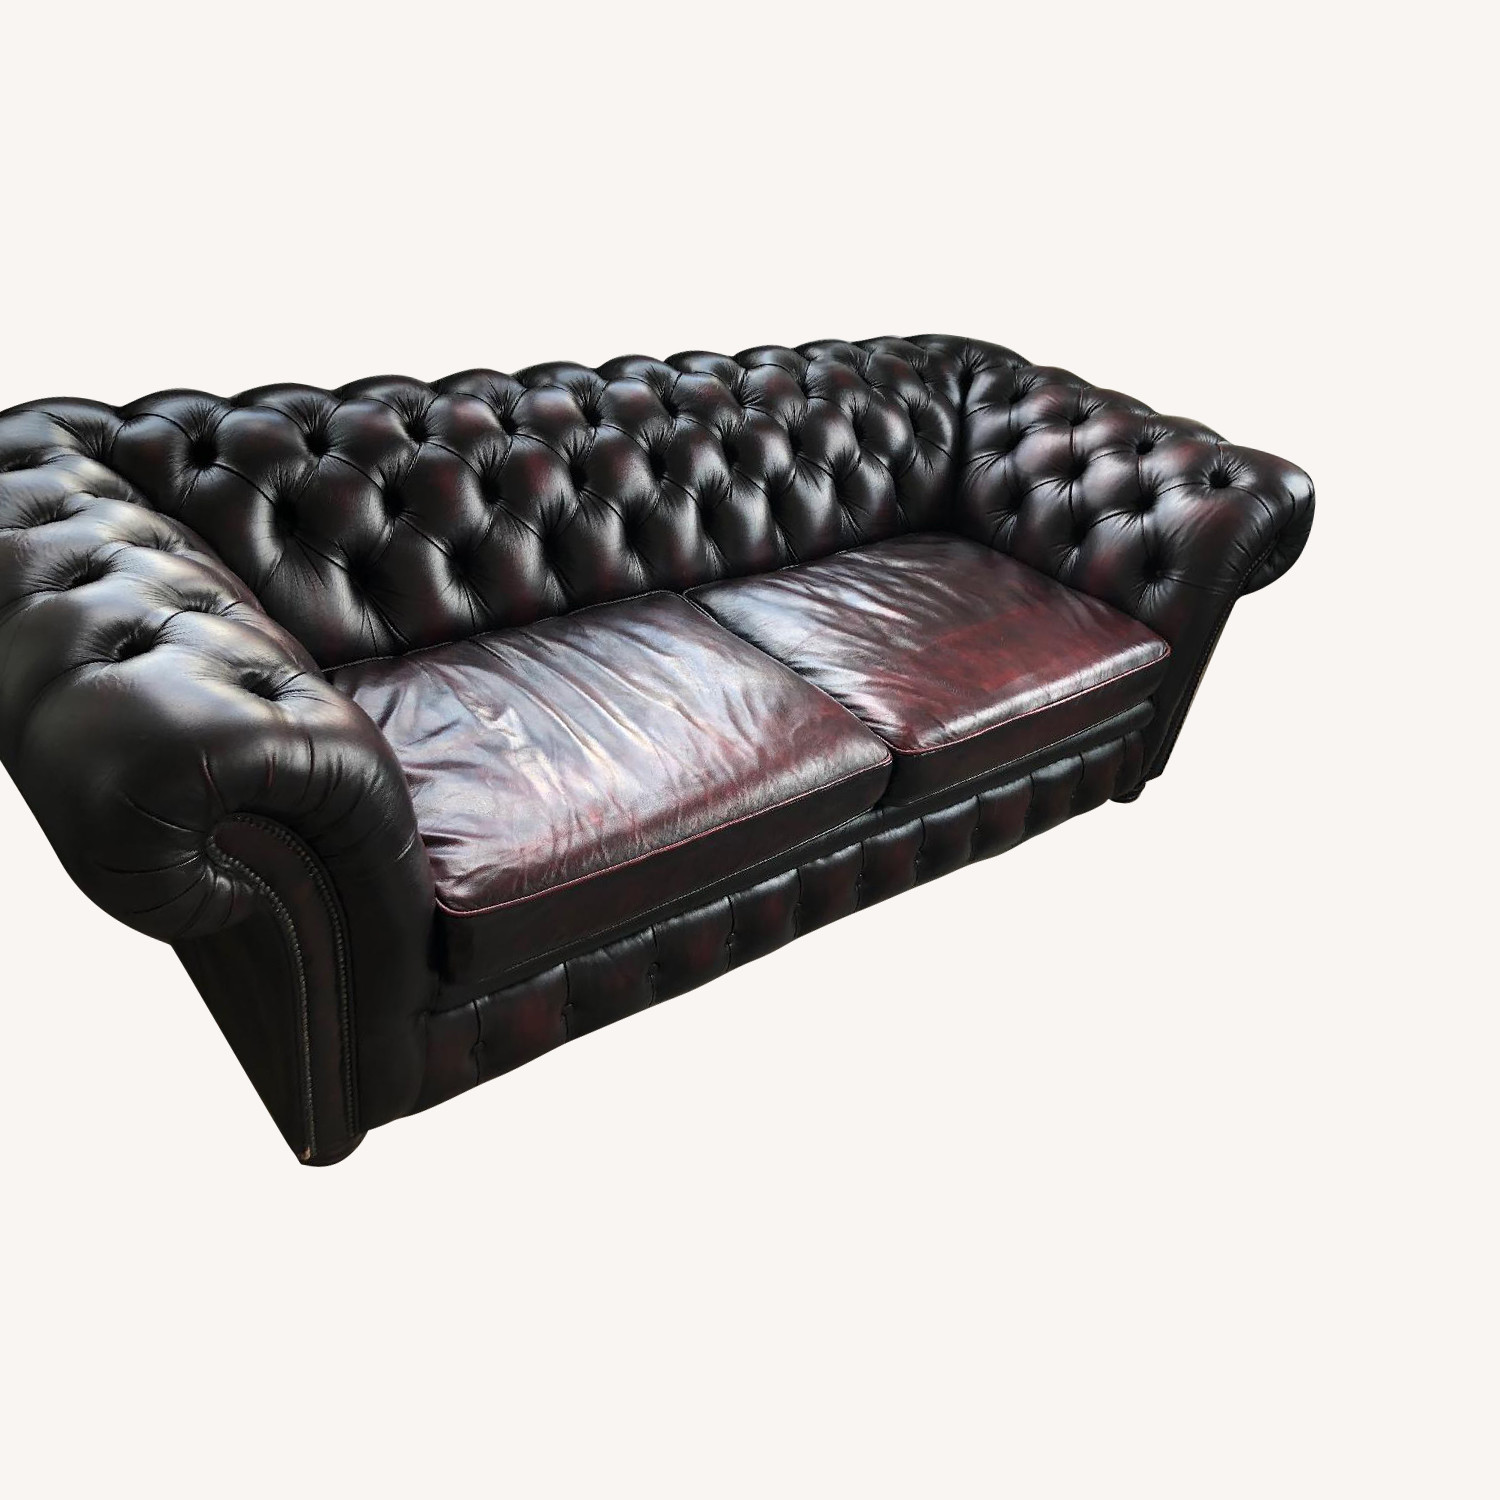 Leather Chesterfield Sofa in Oxblood Red